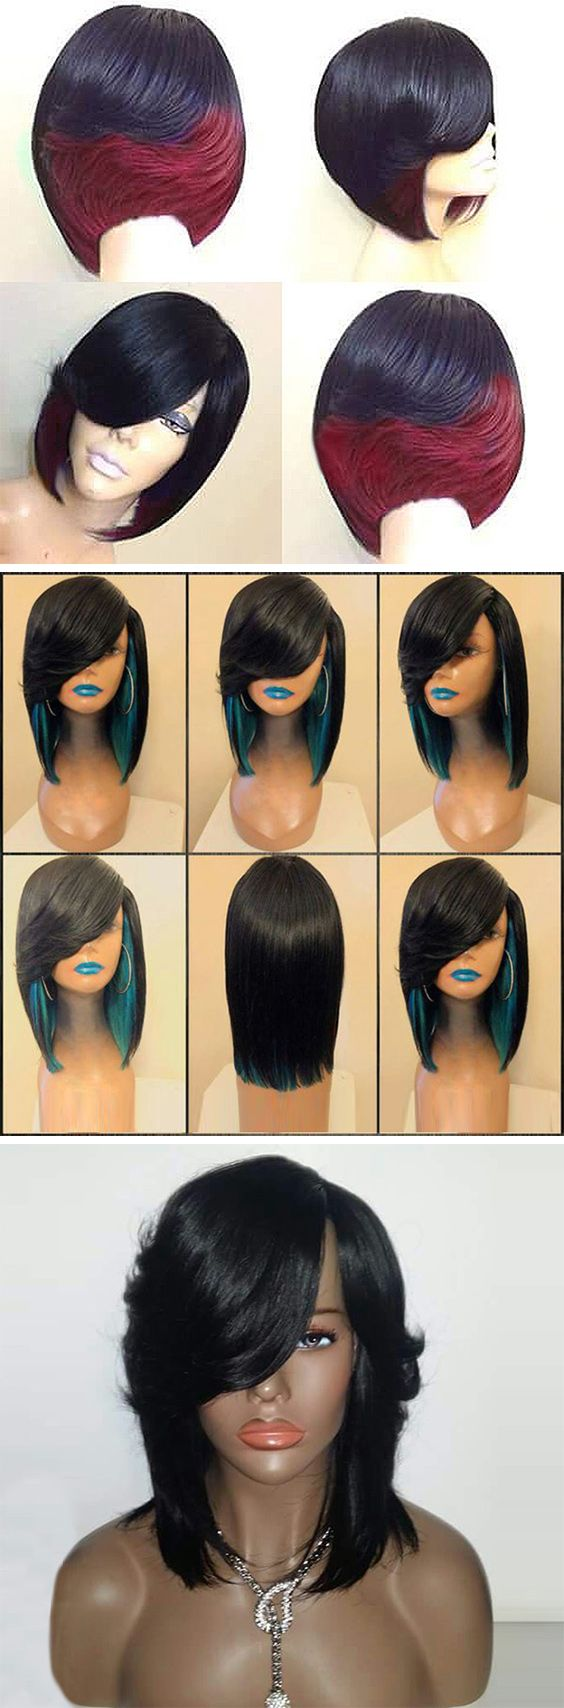 50% OFF Wave Long Synthetic Wig,Free Shipping Worldwide.#hair#SyntheticWigs